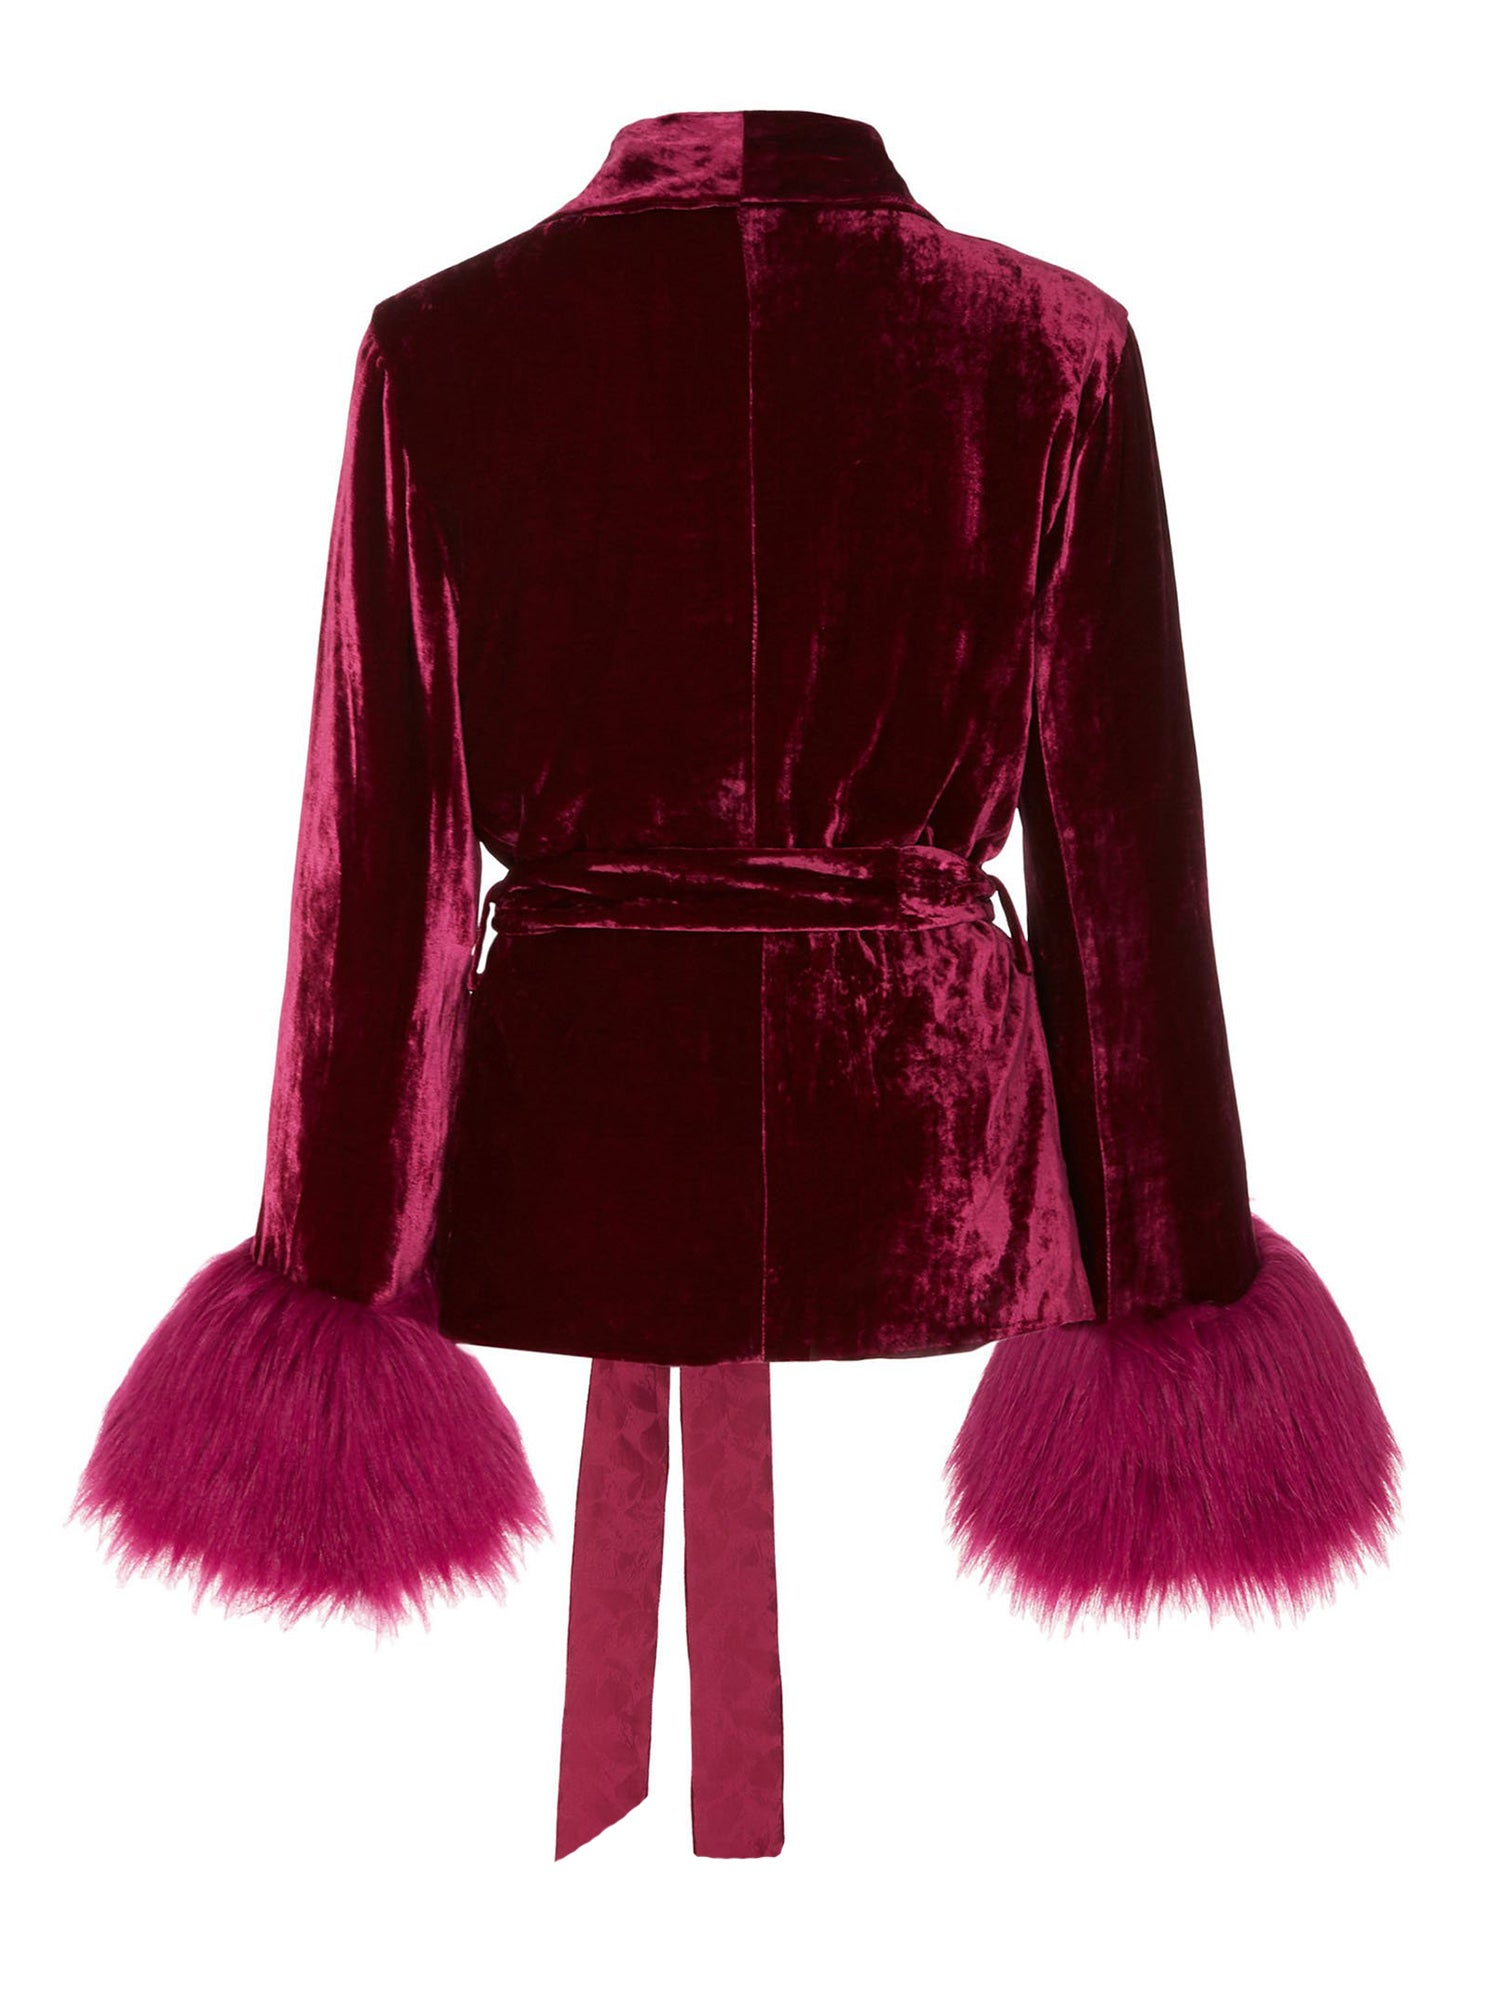 A Packshot Of Marei1998's Clarkia Silk Velvet Jacket In Bold Raspberry Color. Featuring Lapel Collar and Bell Sleeves, Trimmed With Faux Fur. Matching Tip-up Belt To Define The Waist. Back View. Resort 2020 Collection - Furless Friendship.